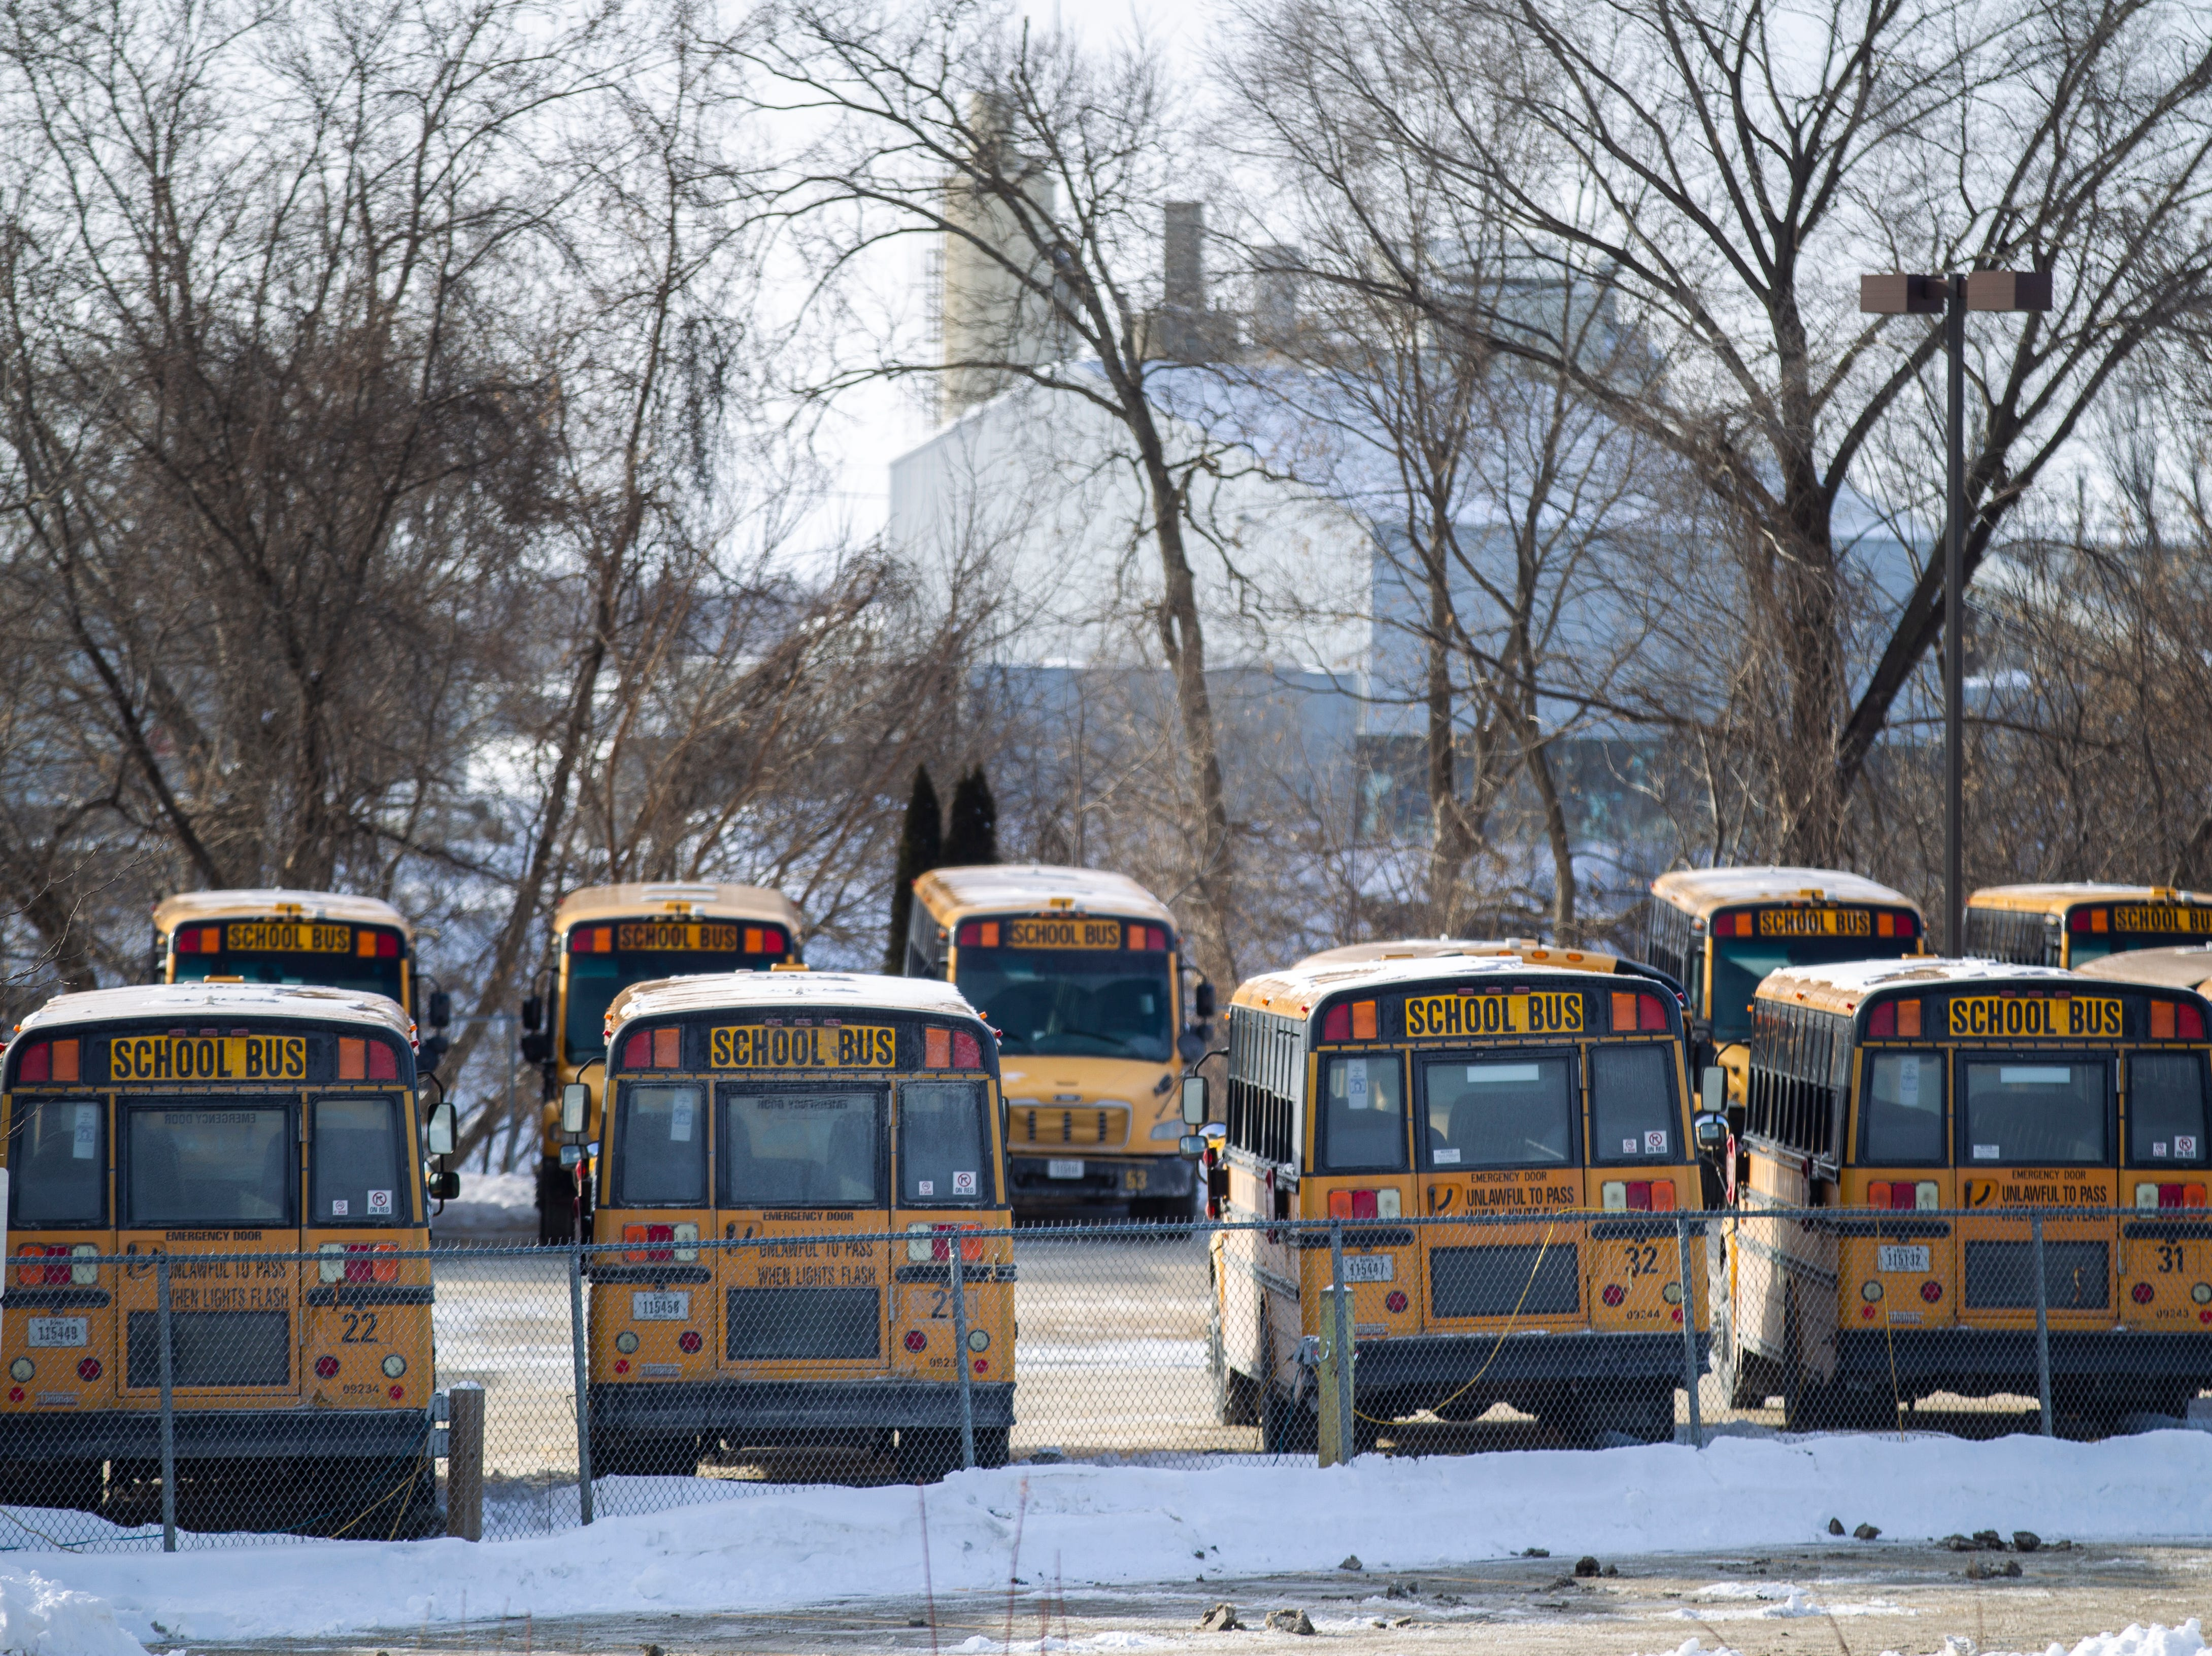 Iowa City Community School District busses are seen on Tuesday, Jan. 29, 2019, at Durham School Services in Iowa City, Iowa. School was canceled Tuesday, Wednesday and Thursday due to extreme cold.